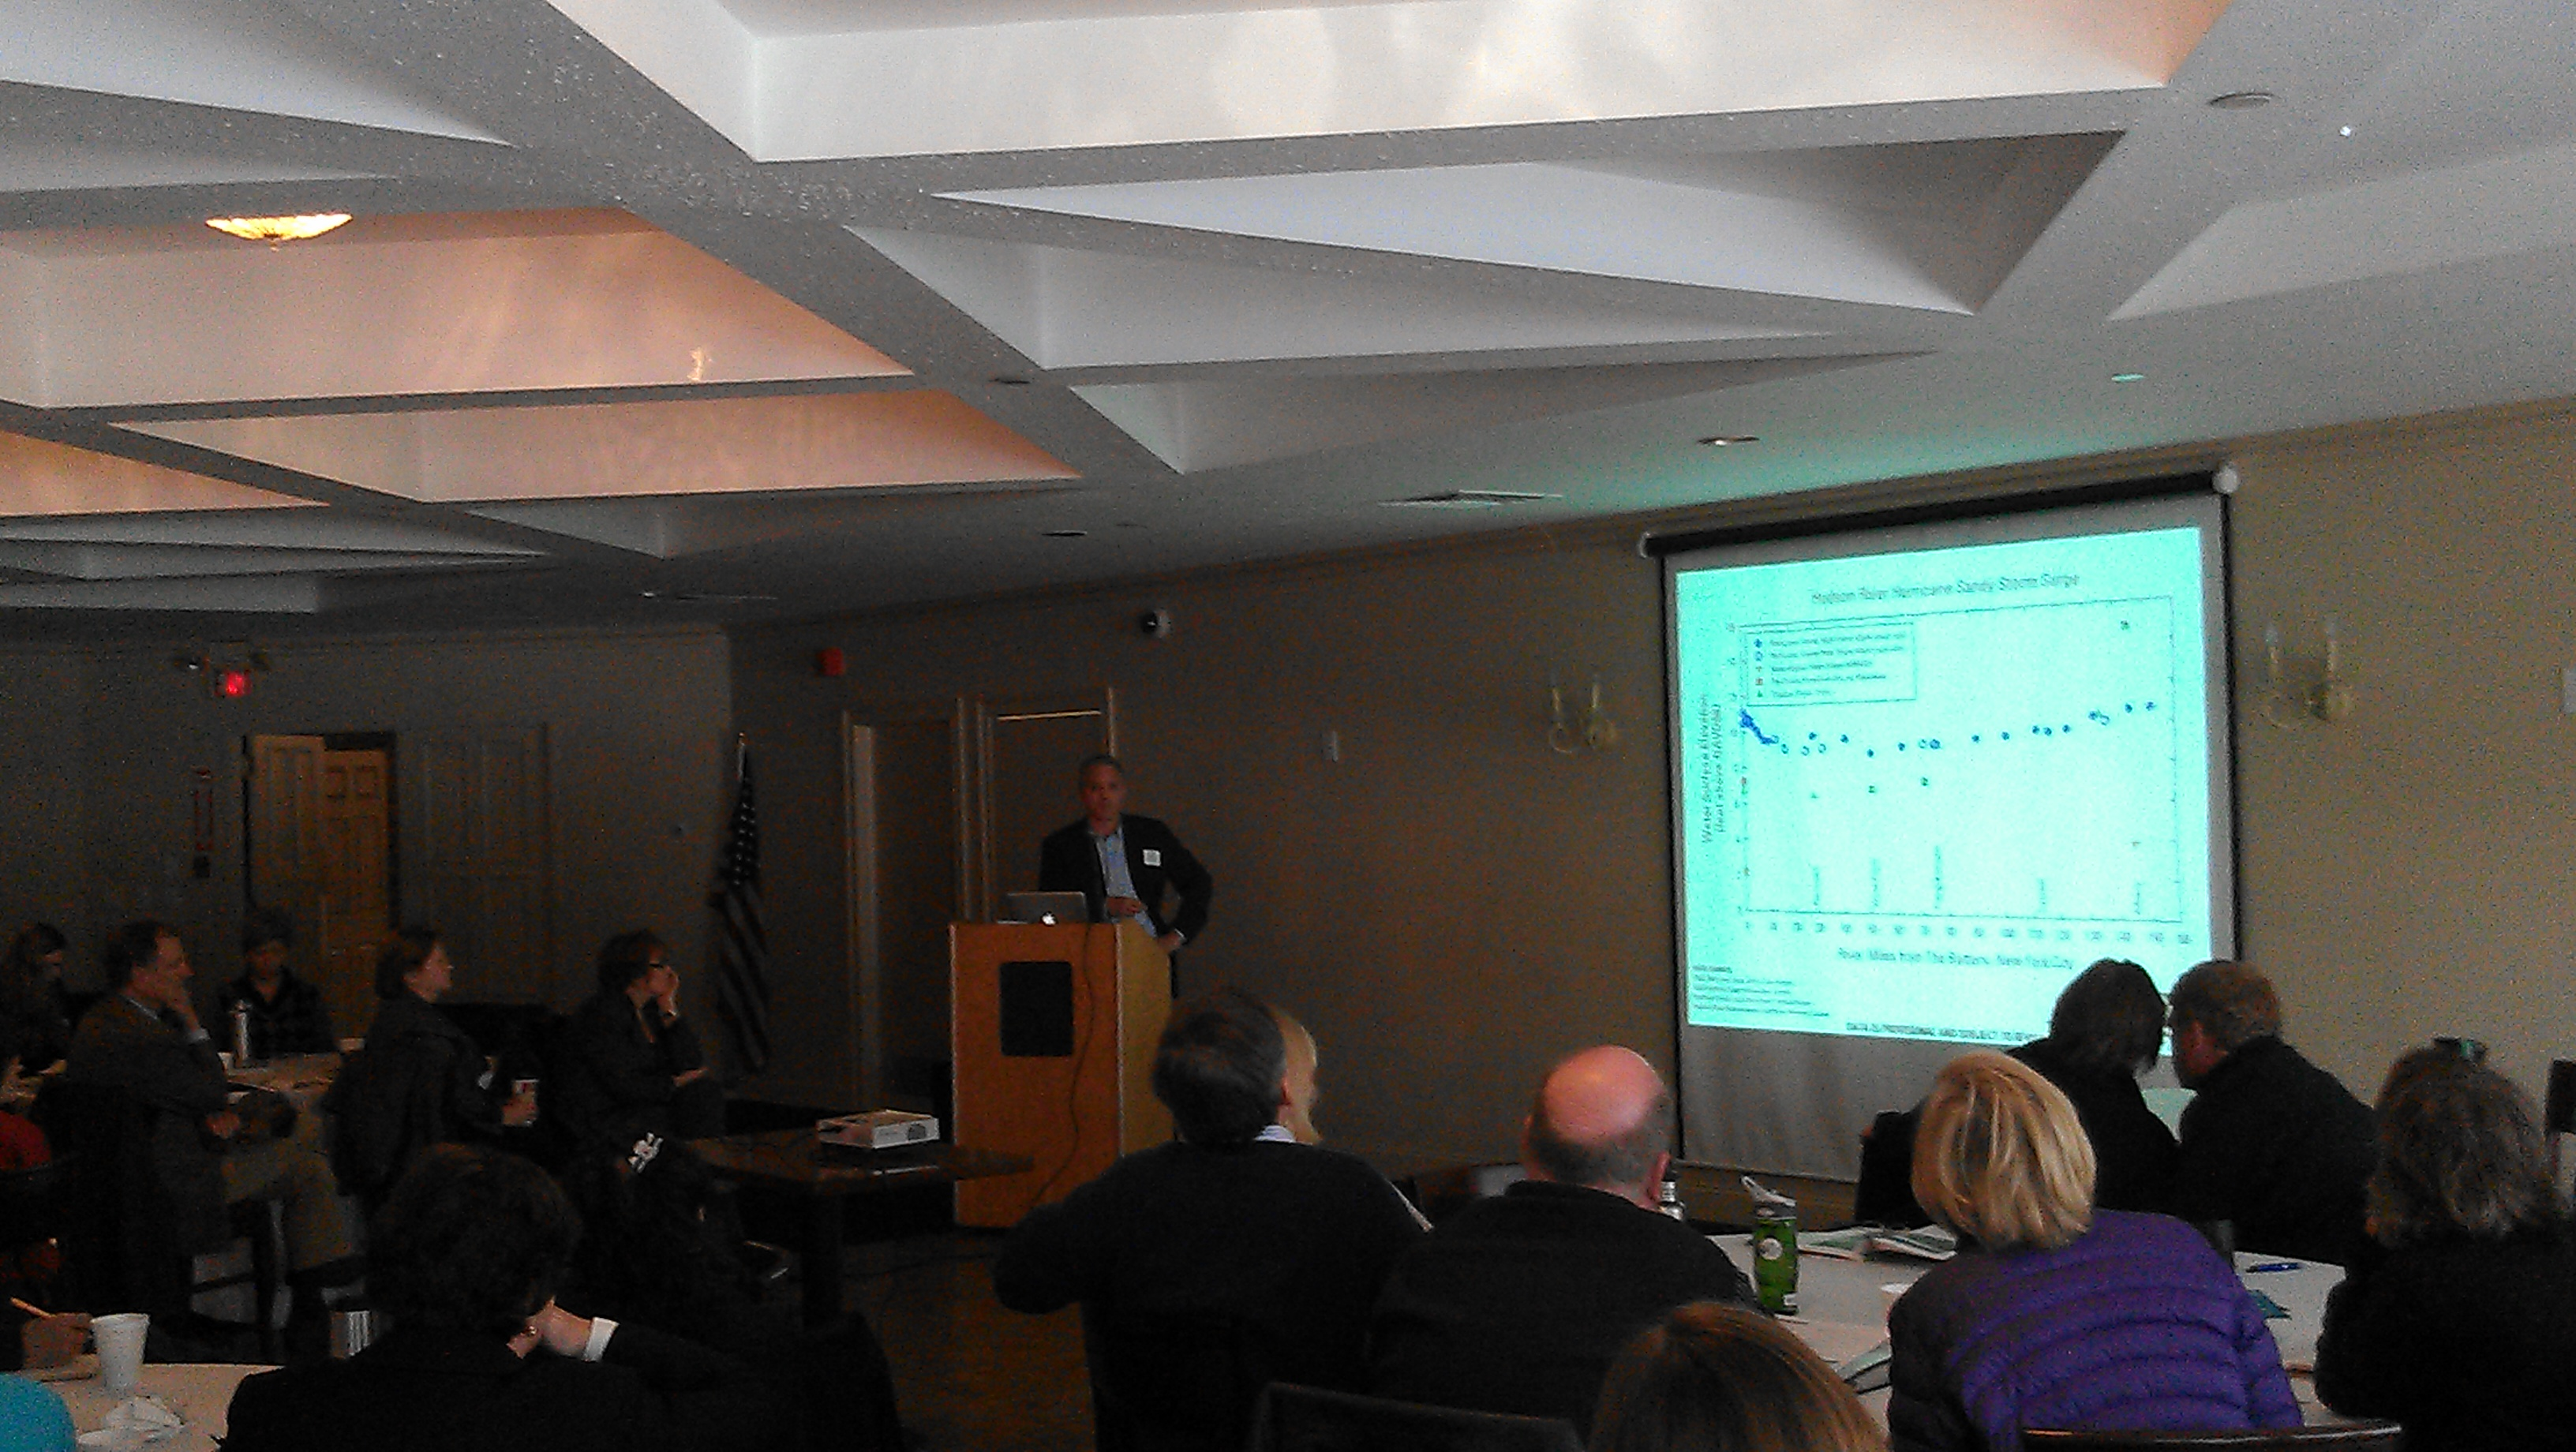 Sacha Spector of Scenic Hudson was among the presenters at Thursday's seminar in Peekskill.